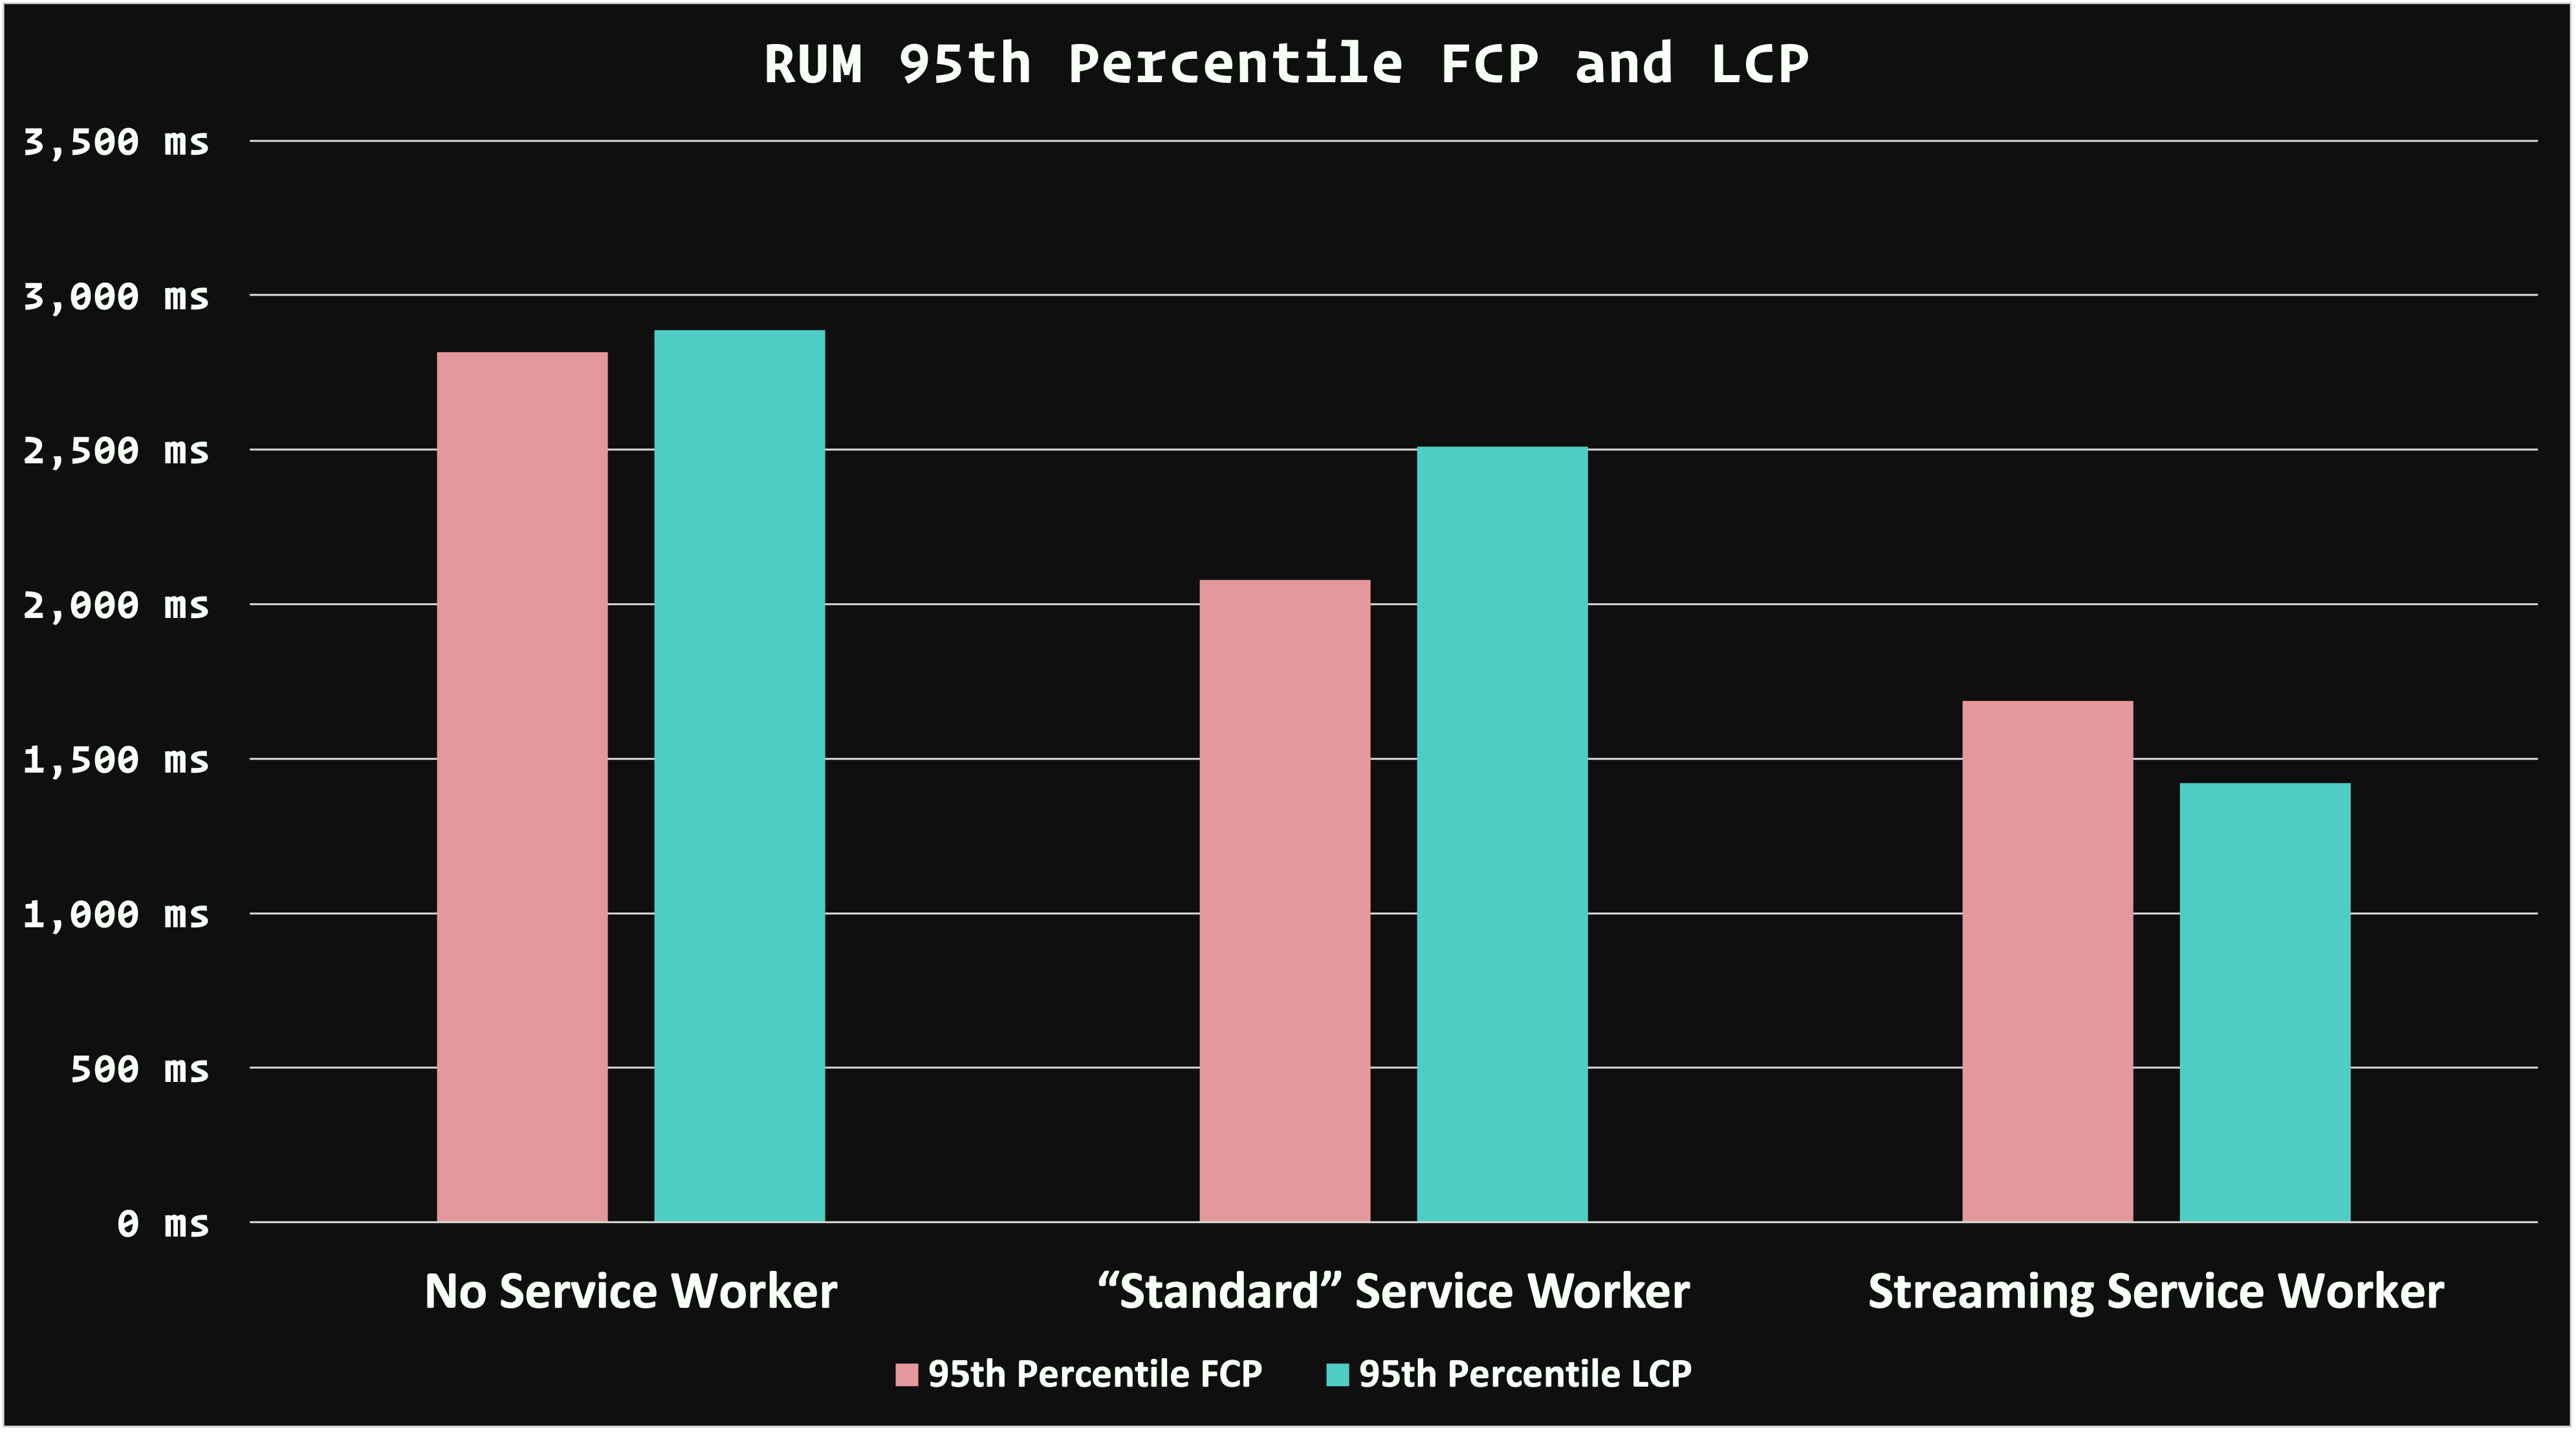 A bar chart comparing the RUM median FCP and LCP performance of no service worker, a